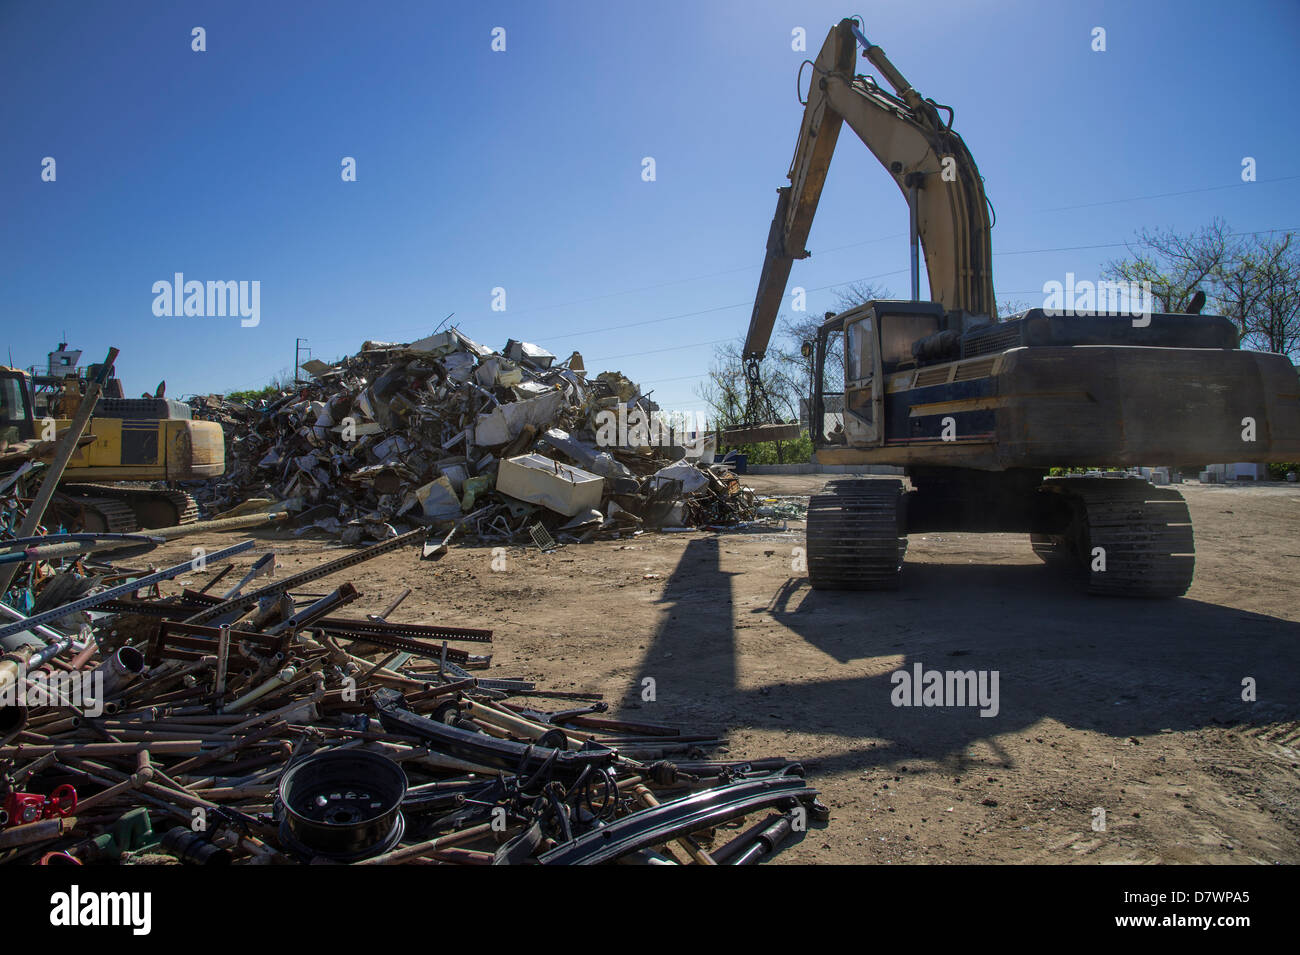 Crane With Magnet Picking Up Scrap Metal For Recycling In Junk Yard - Stock Image